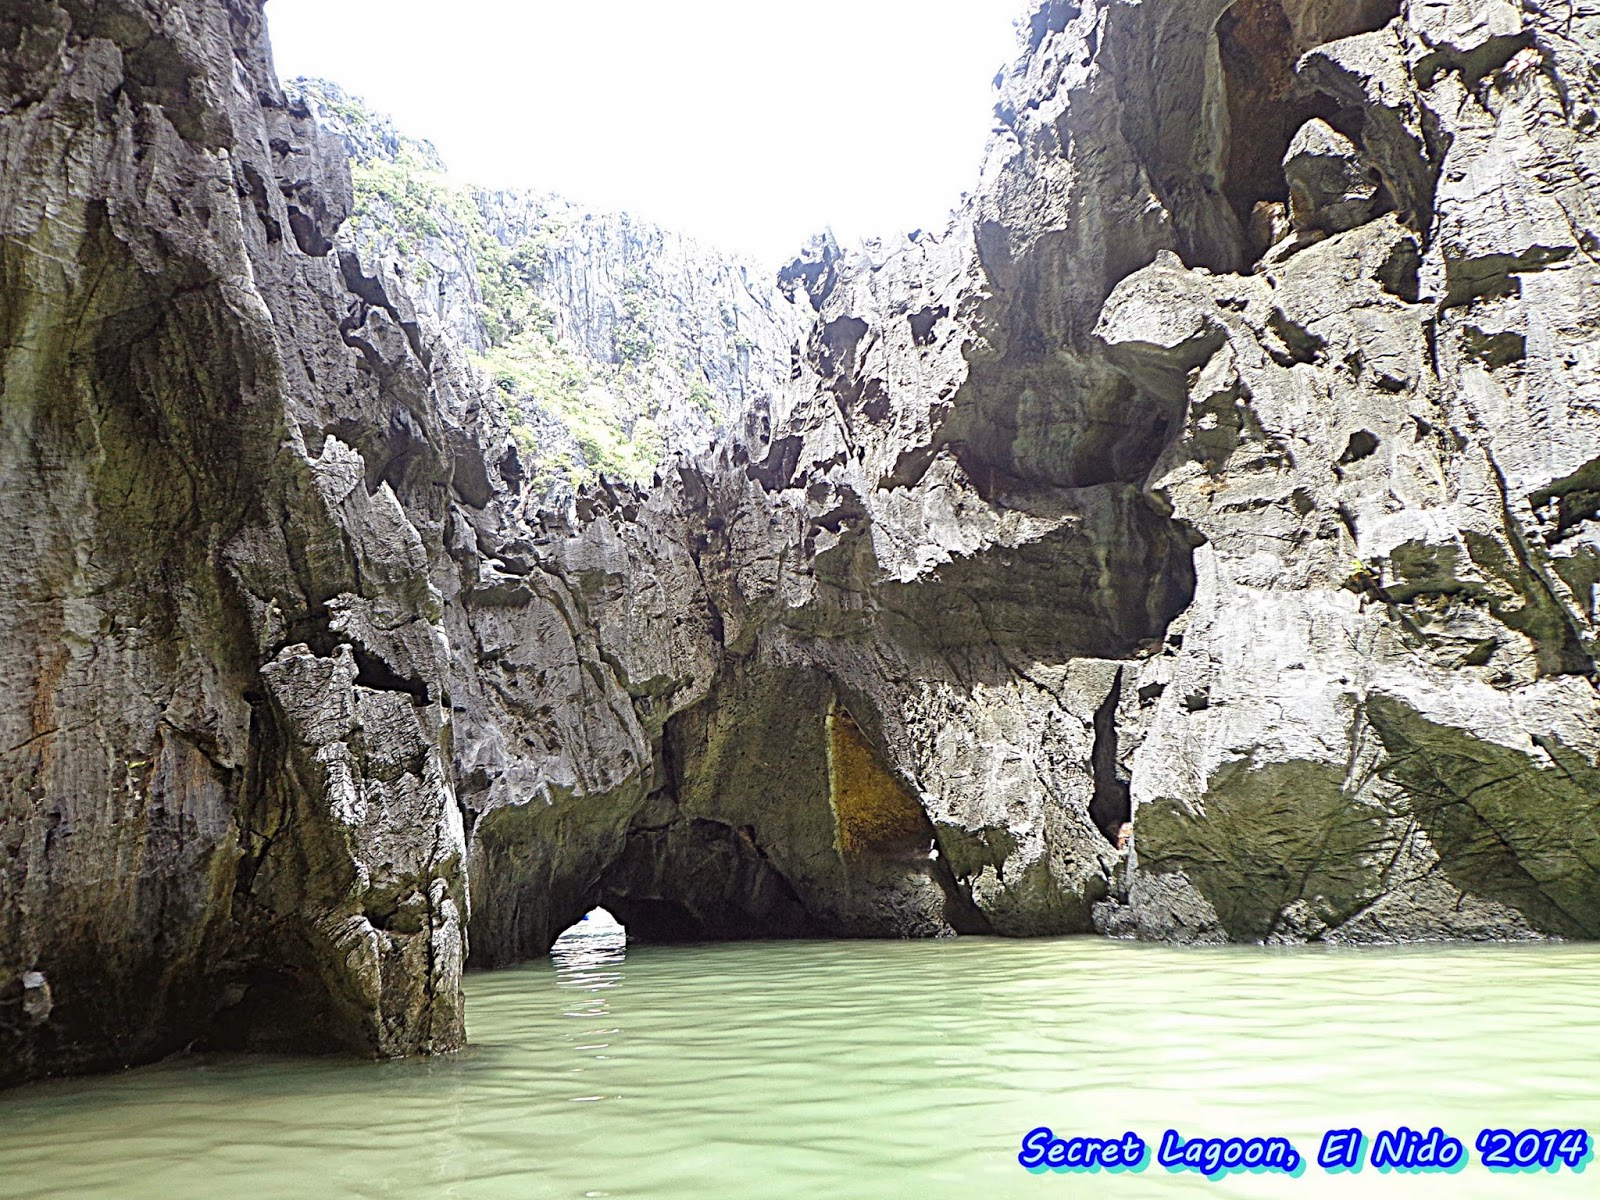 Secret Lagoon, Tour A, El Nido, Palawan